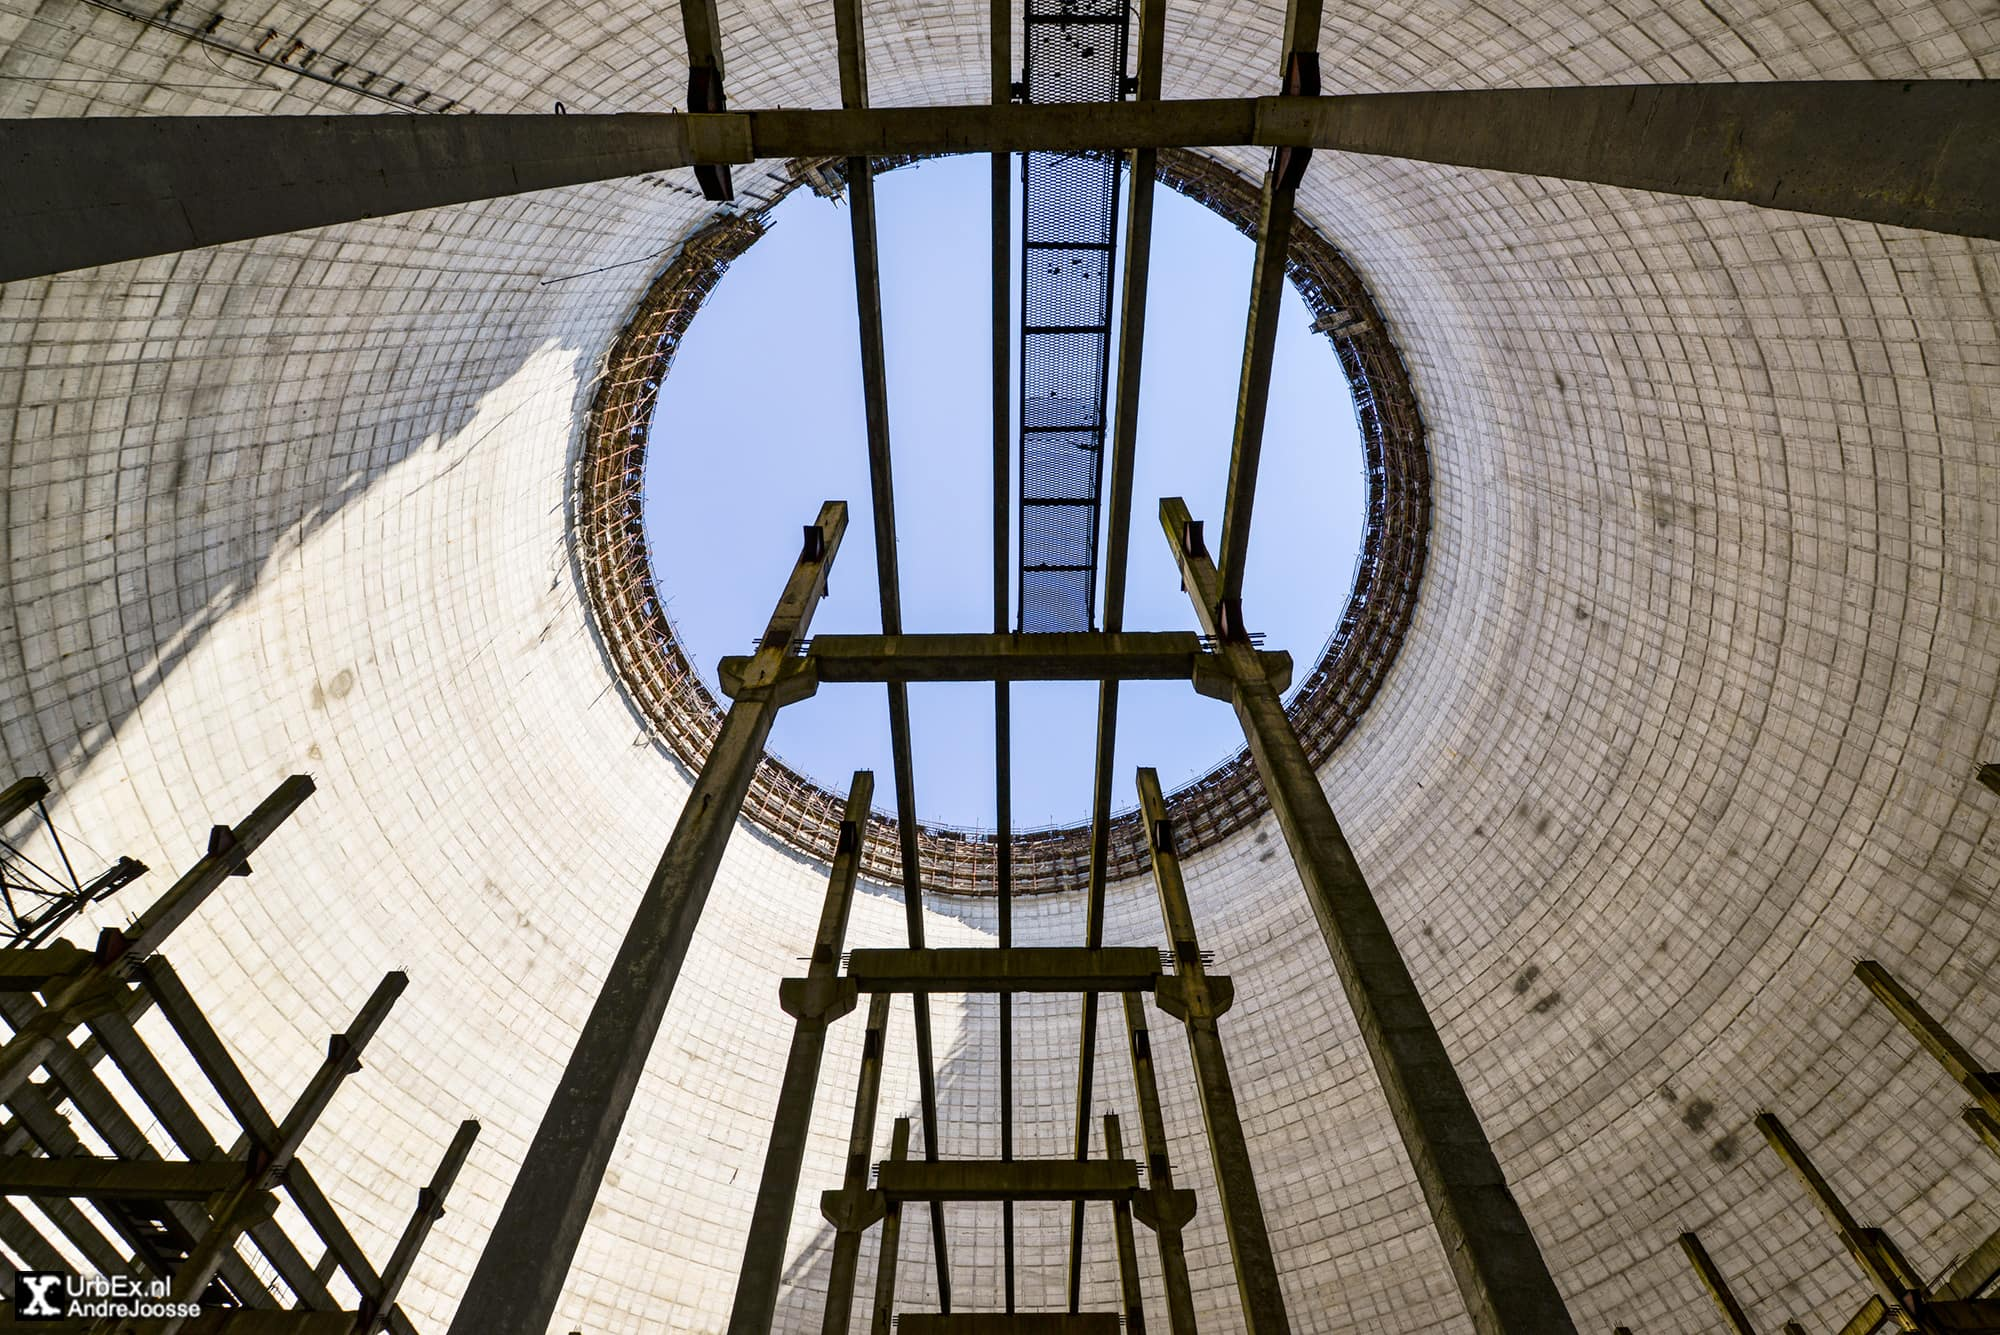 Сooling towers of the Chernobyl Power Plant